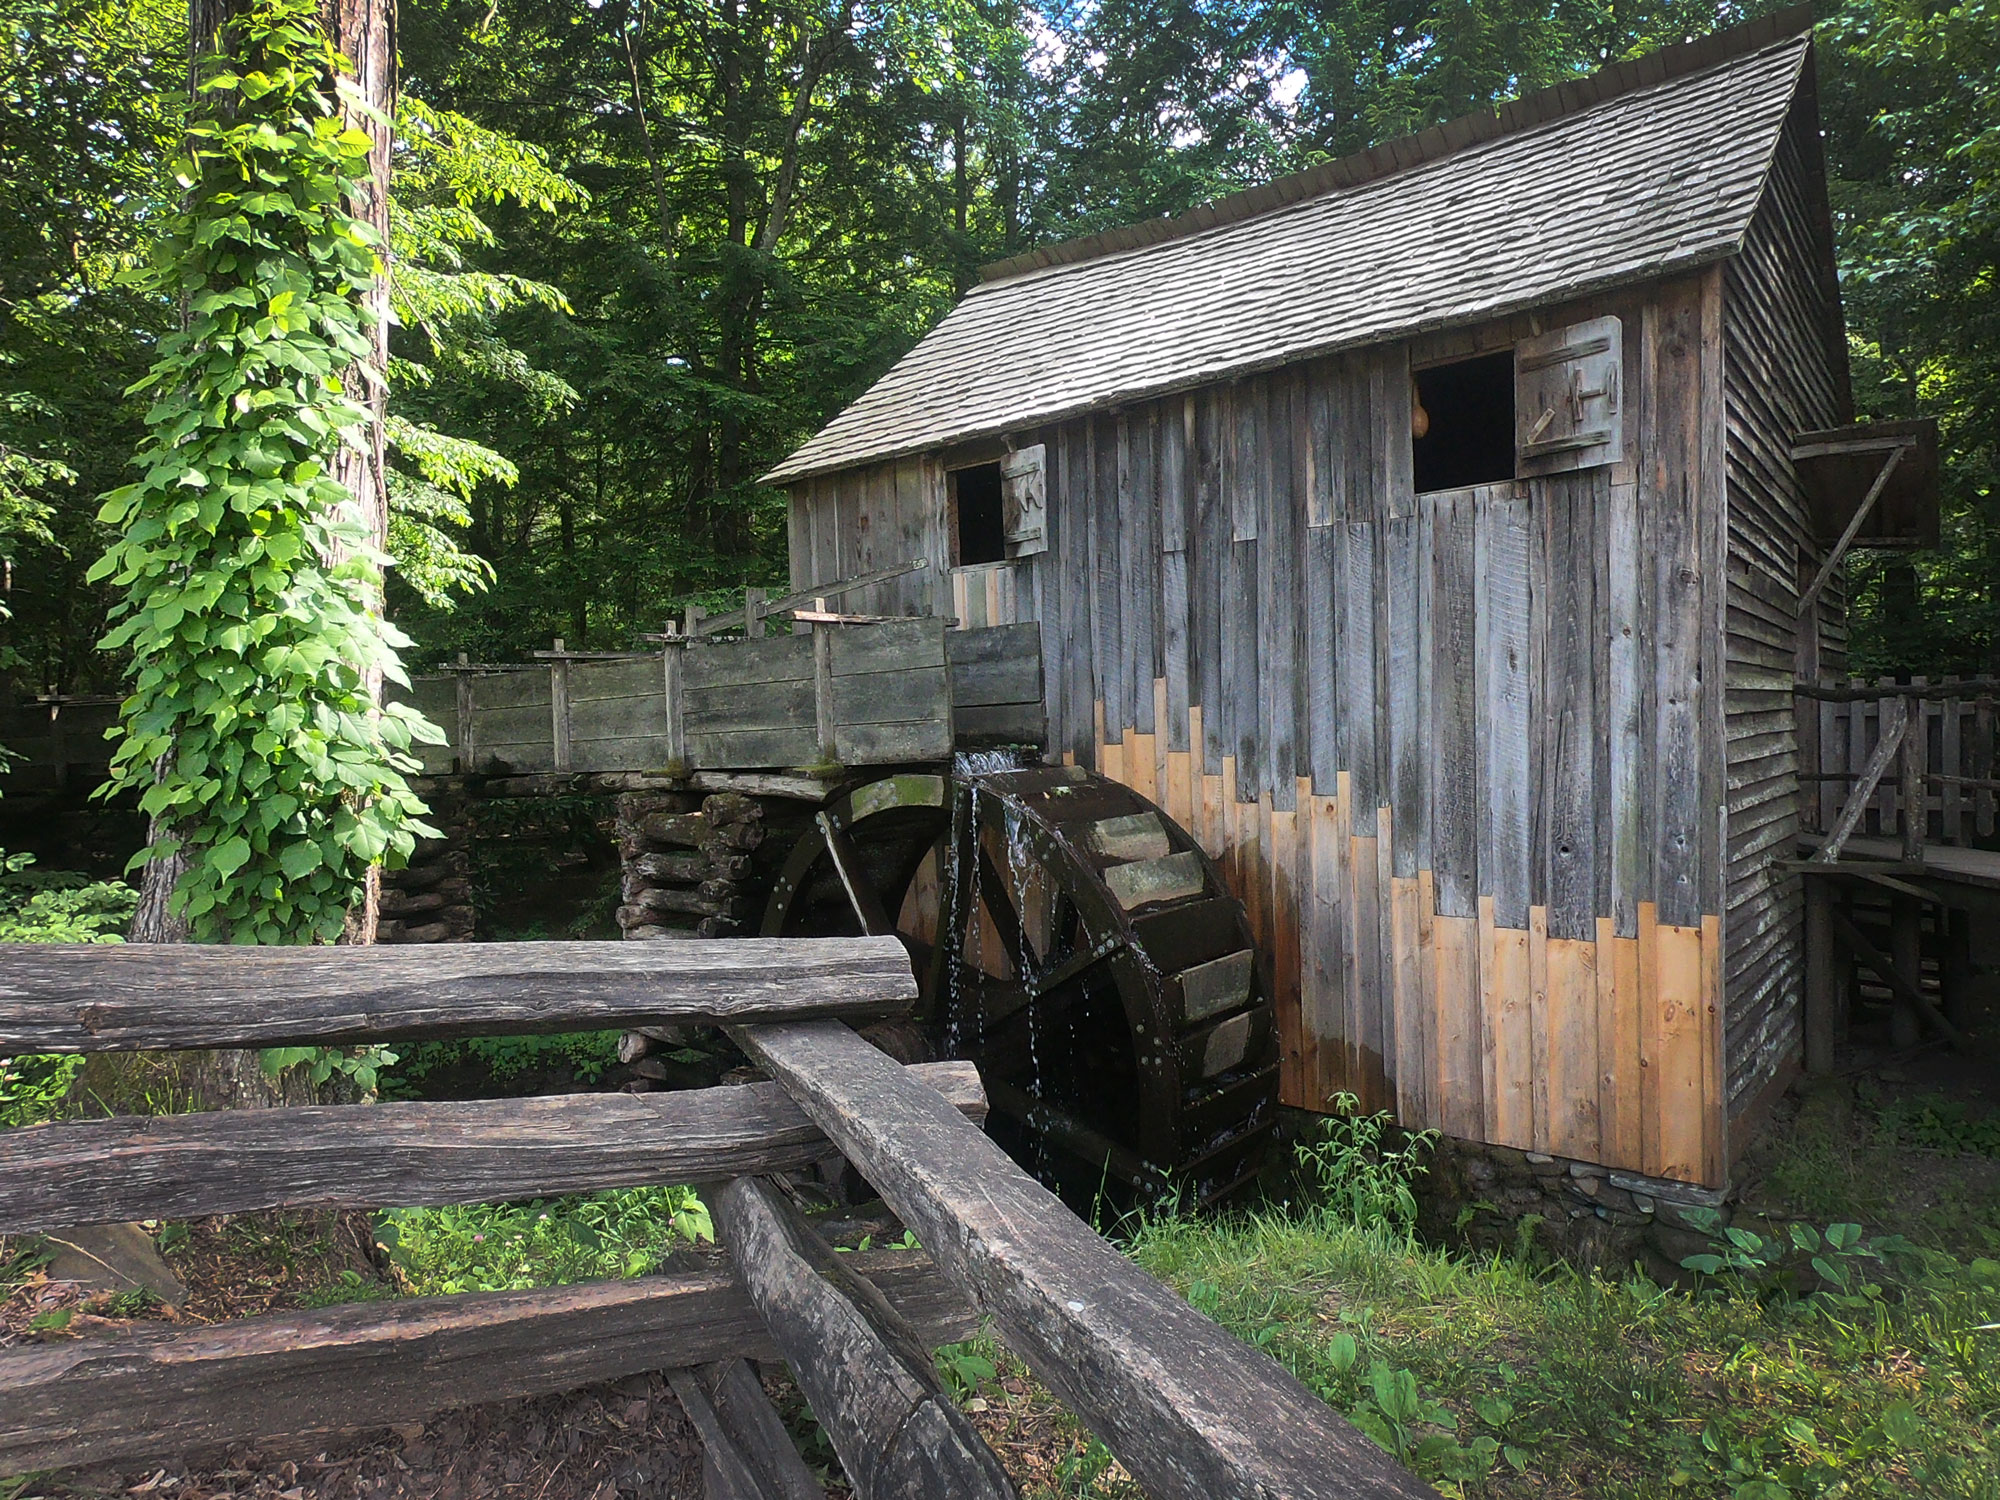 Cable Grist Mill in Cades Cove Loop in Great Smoky Mountains National Park, Tennessee